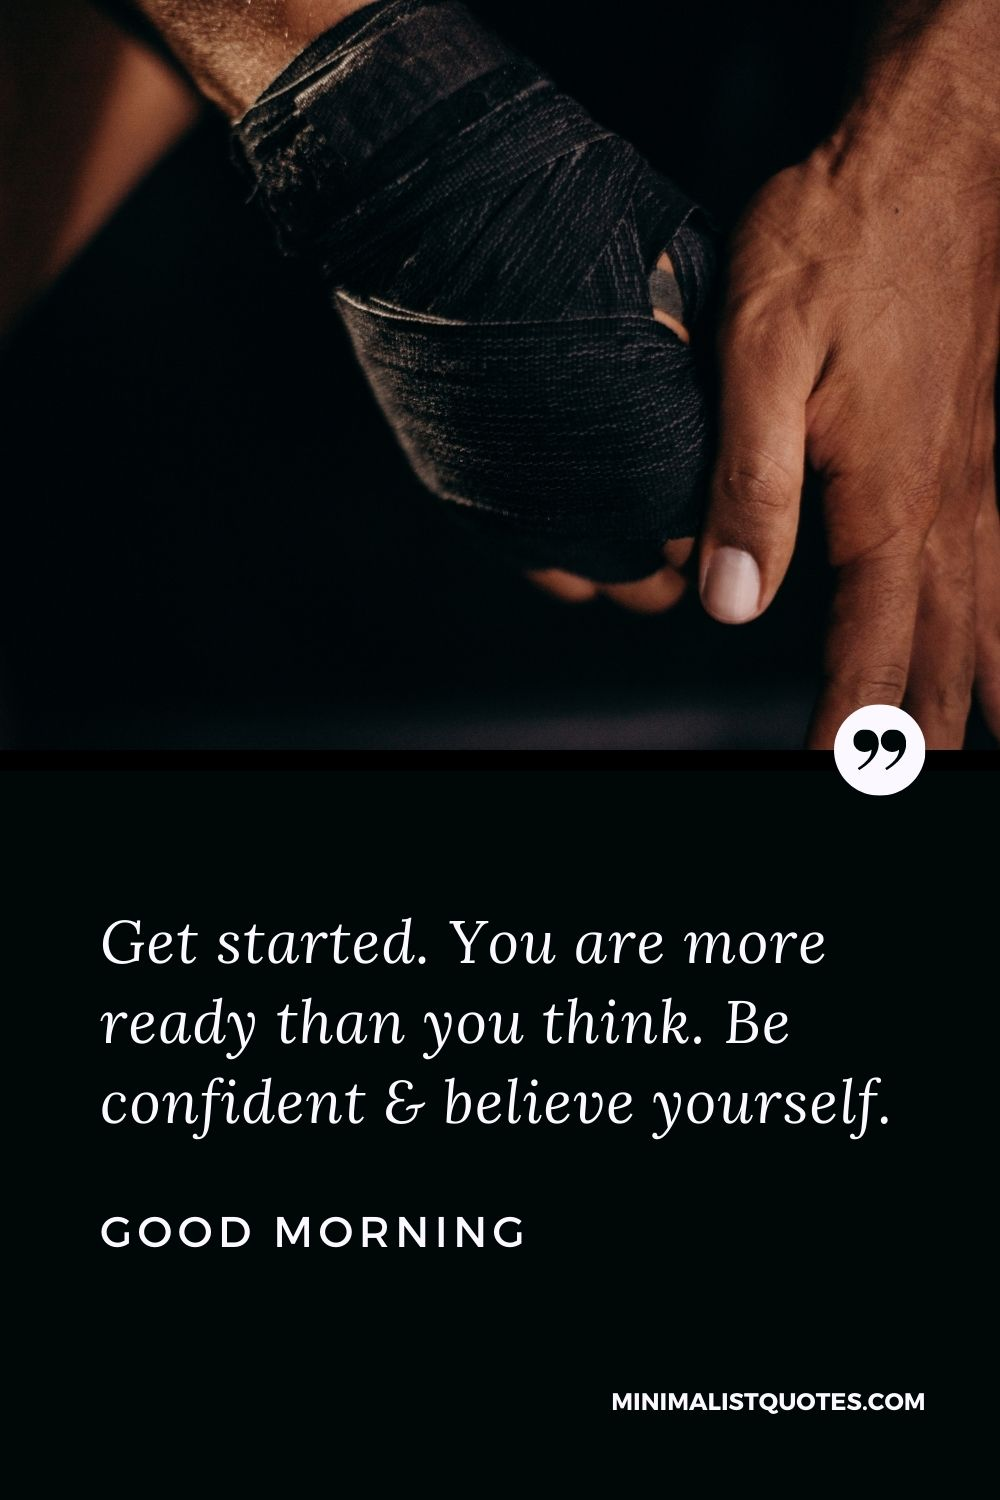 Good Morning Wish & Message With Image: Get started. You are more ready than you think. Be confident & believe yourself.